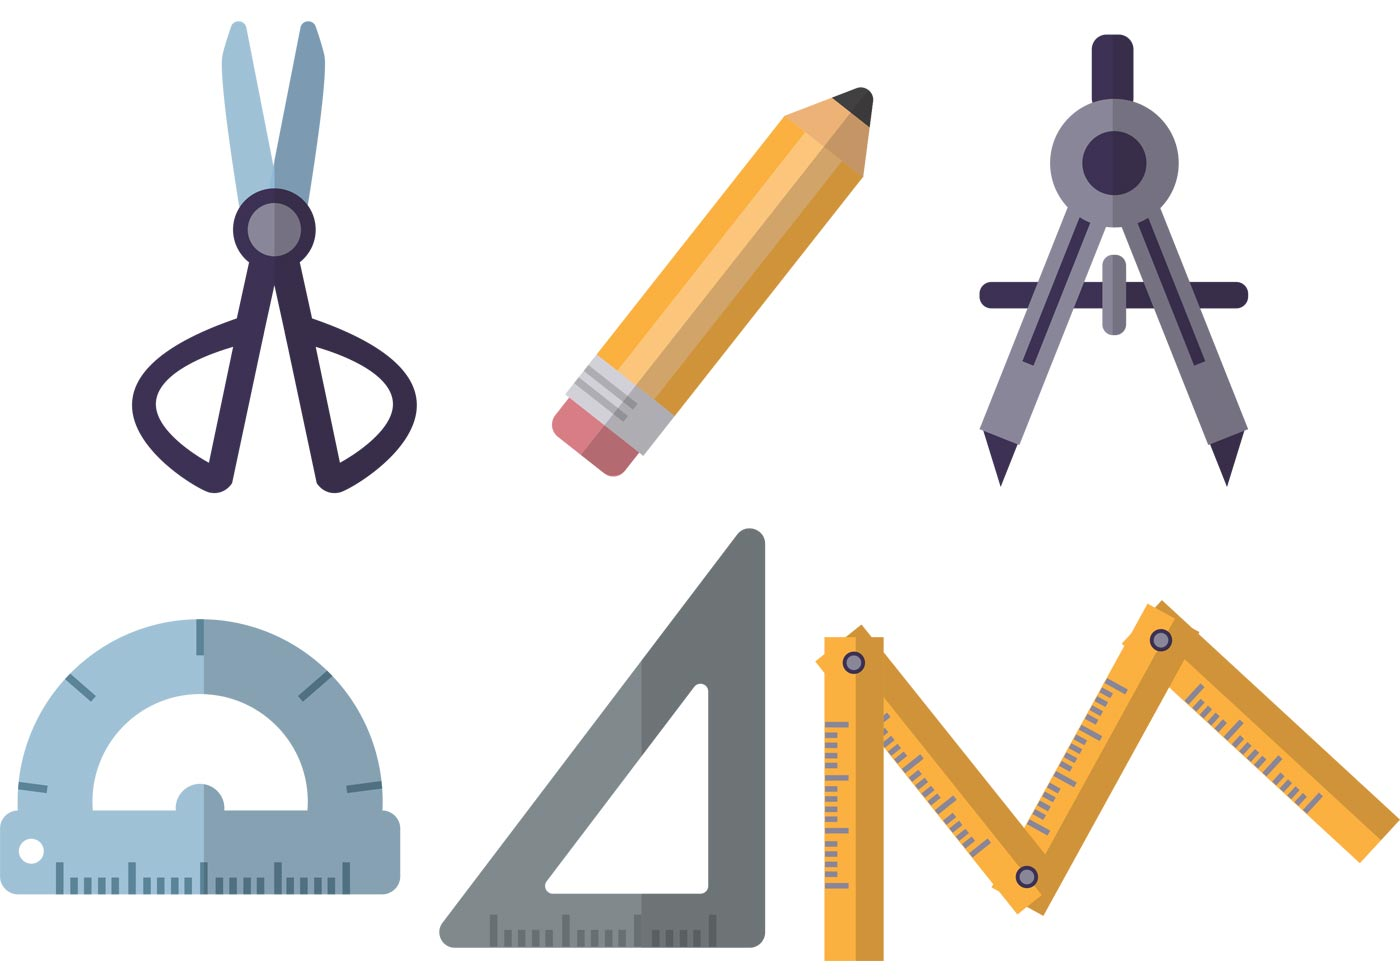 Technical Drawing Equipment